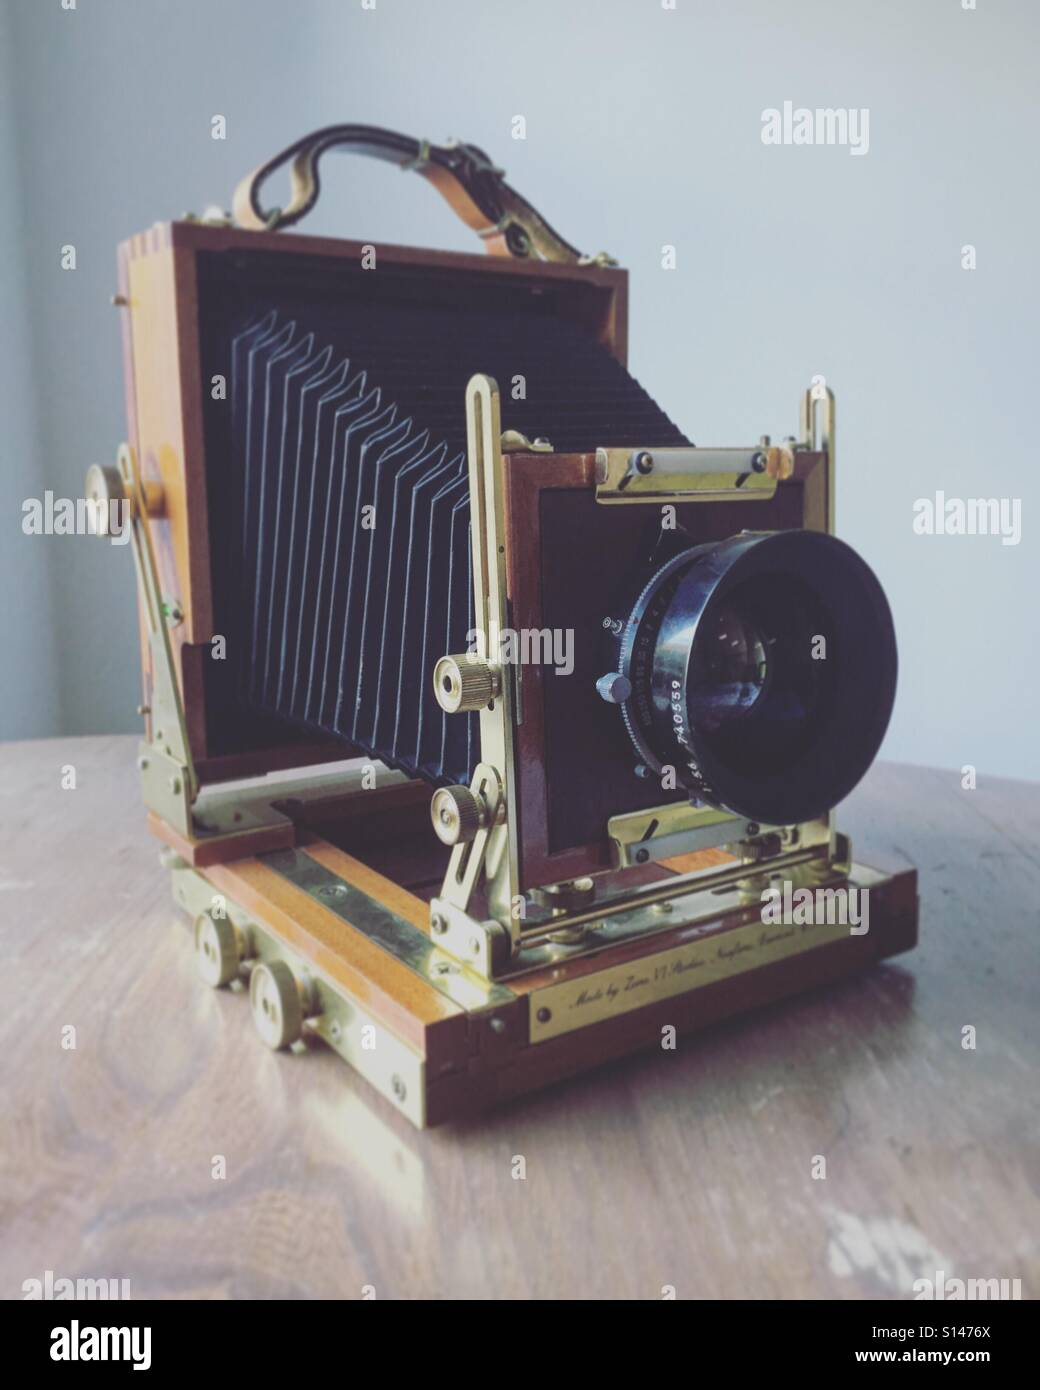 Large format camera on a desk - Stock Image